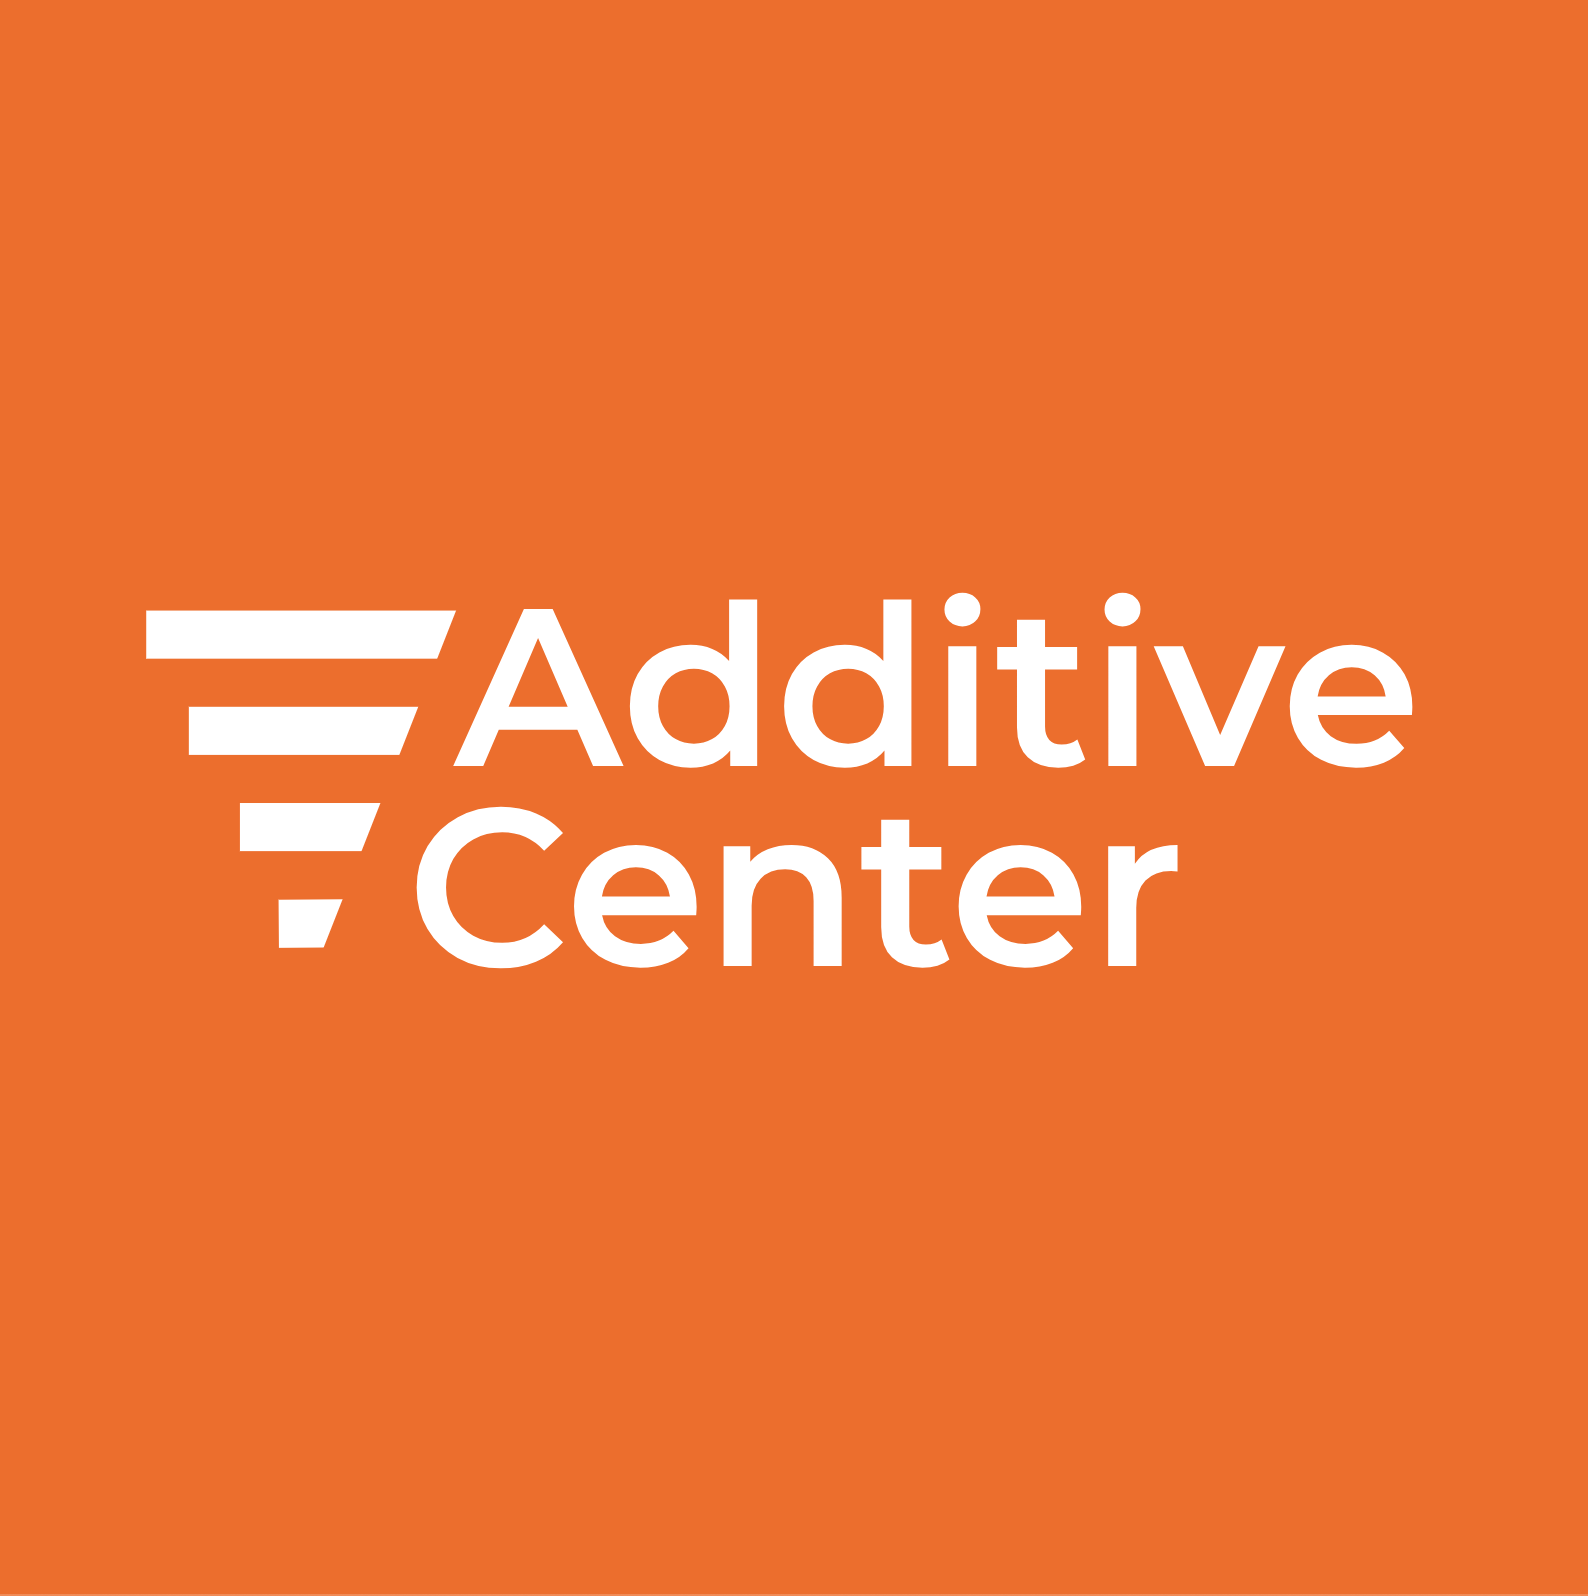 Additive-Center-logo-Orange-Without-text